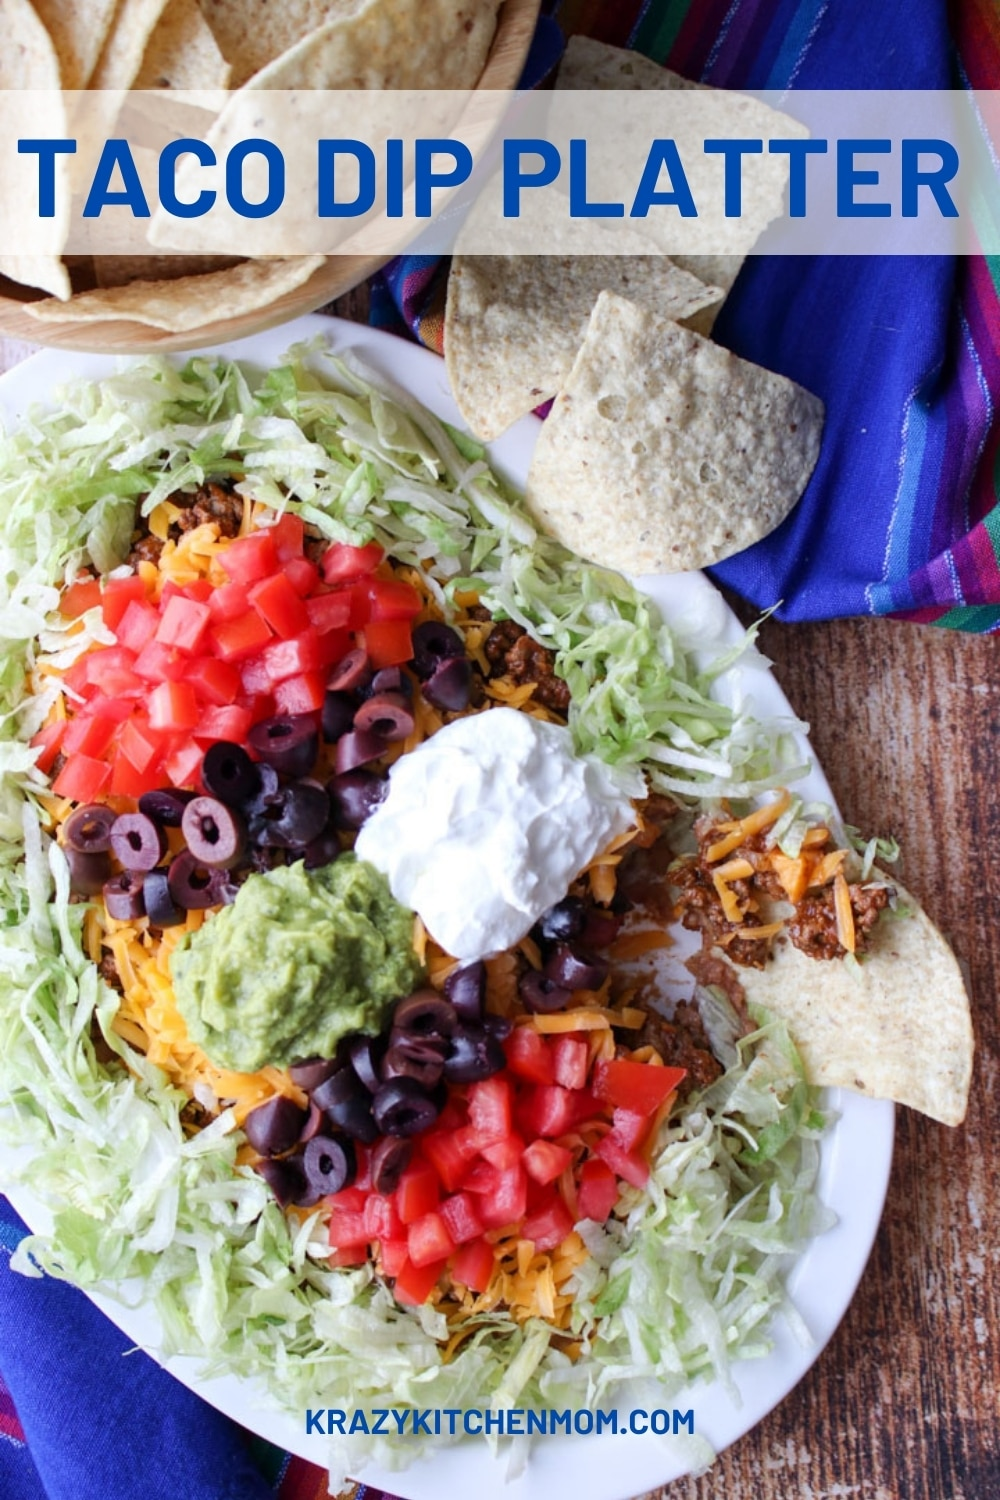 My twist on Mom's layered taco dip plated on a large platter for easy dipping. Layers of beans, taco beef, cheeses, and all the toppings. via @krazykitchenmom